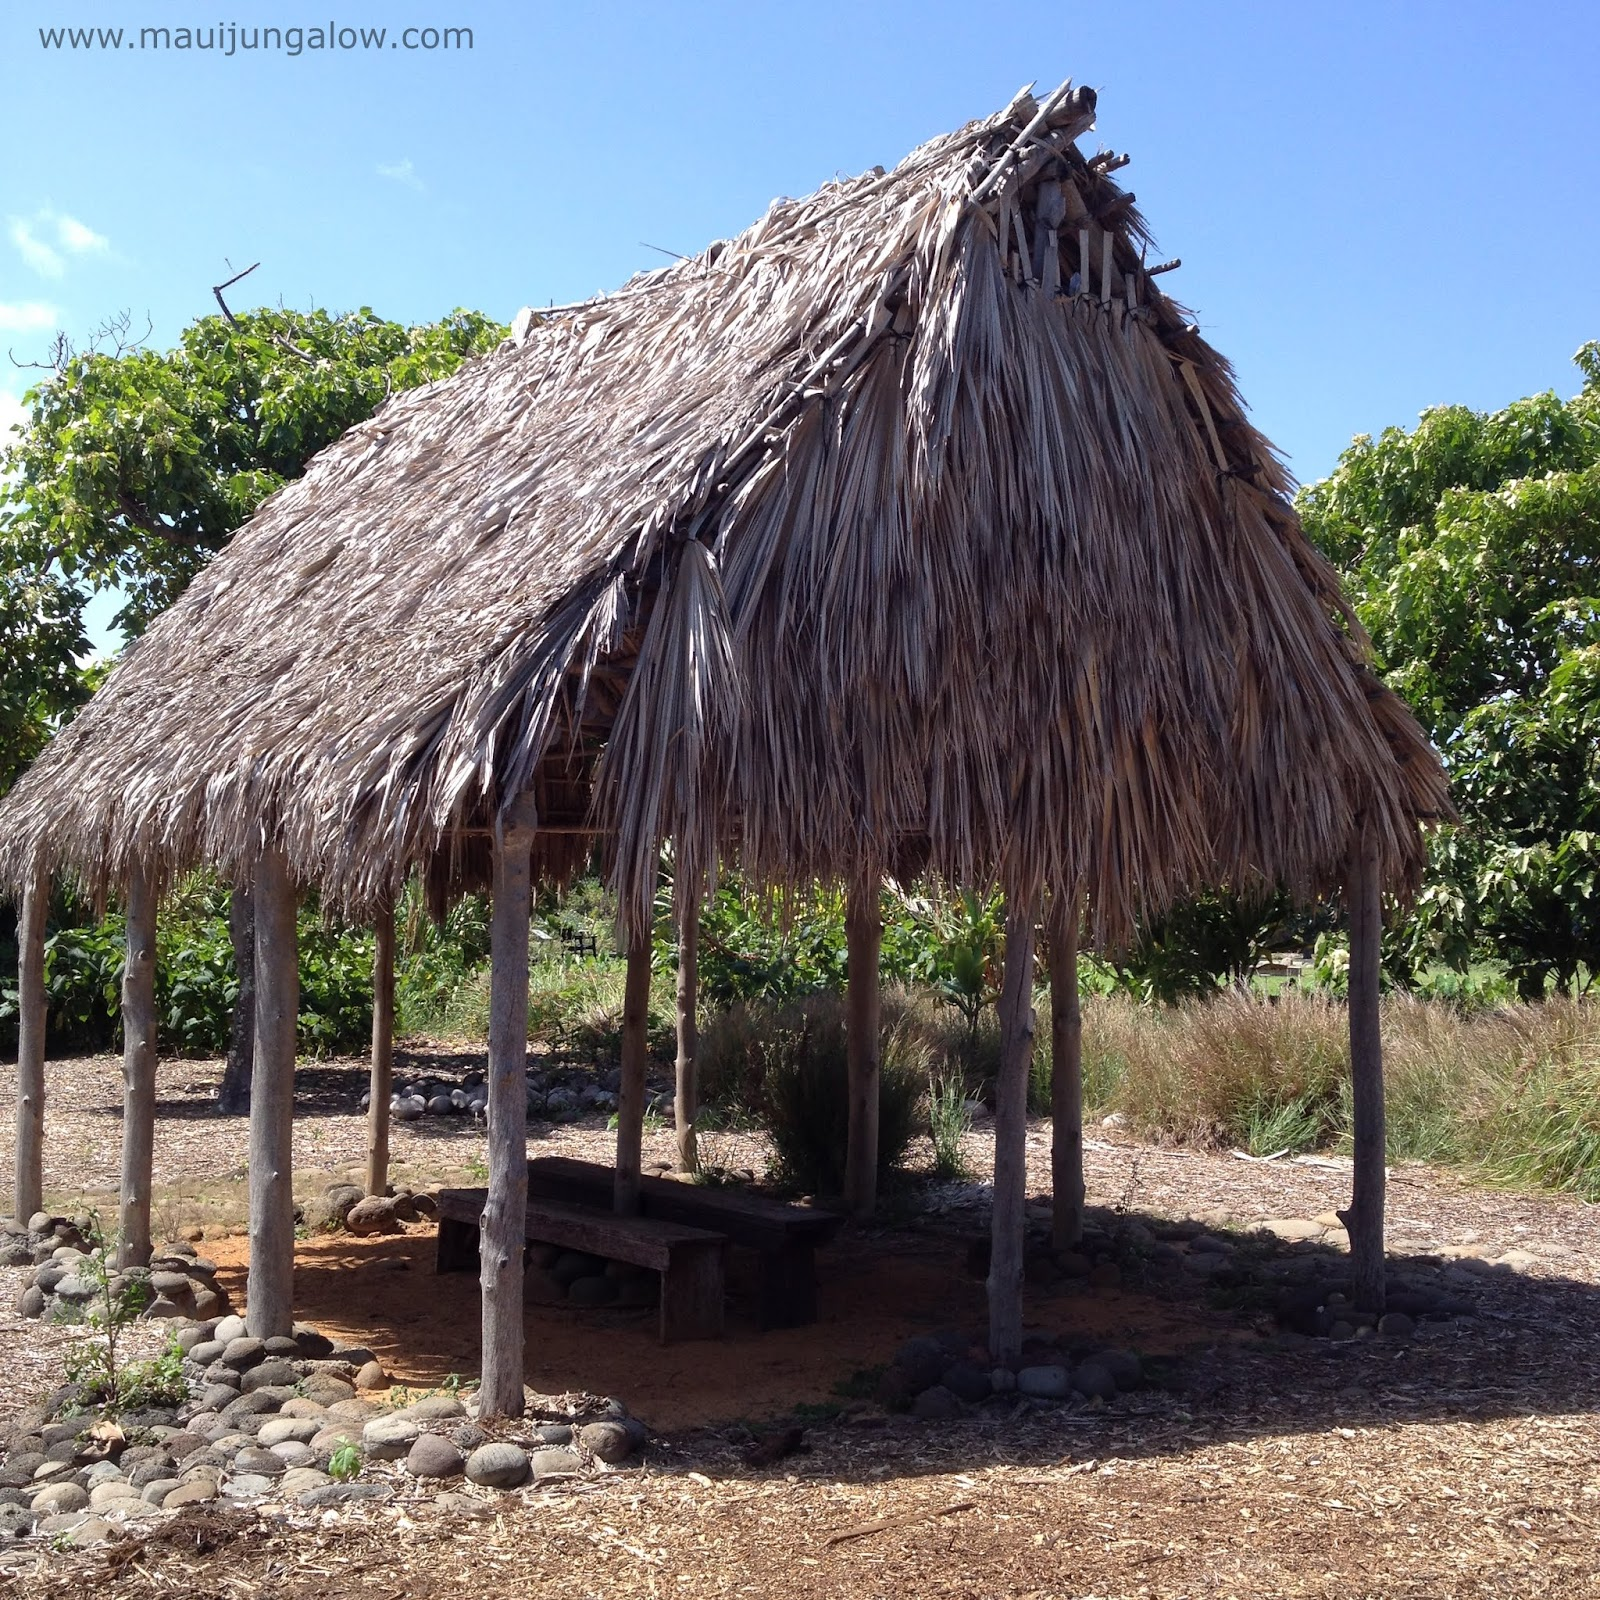 Thatched Hut At Maui Nui Botanical Gardens.